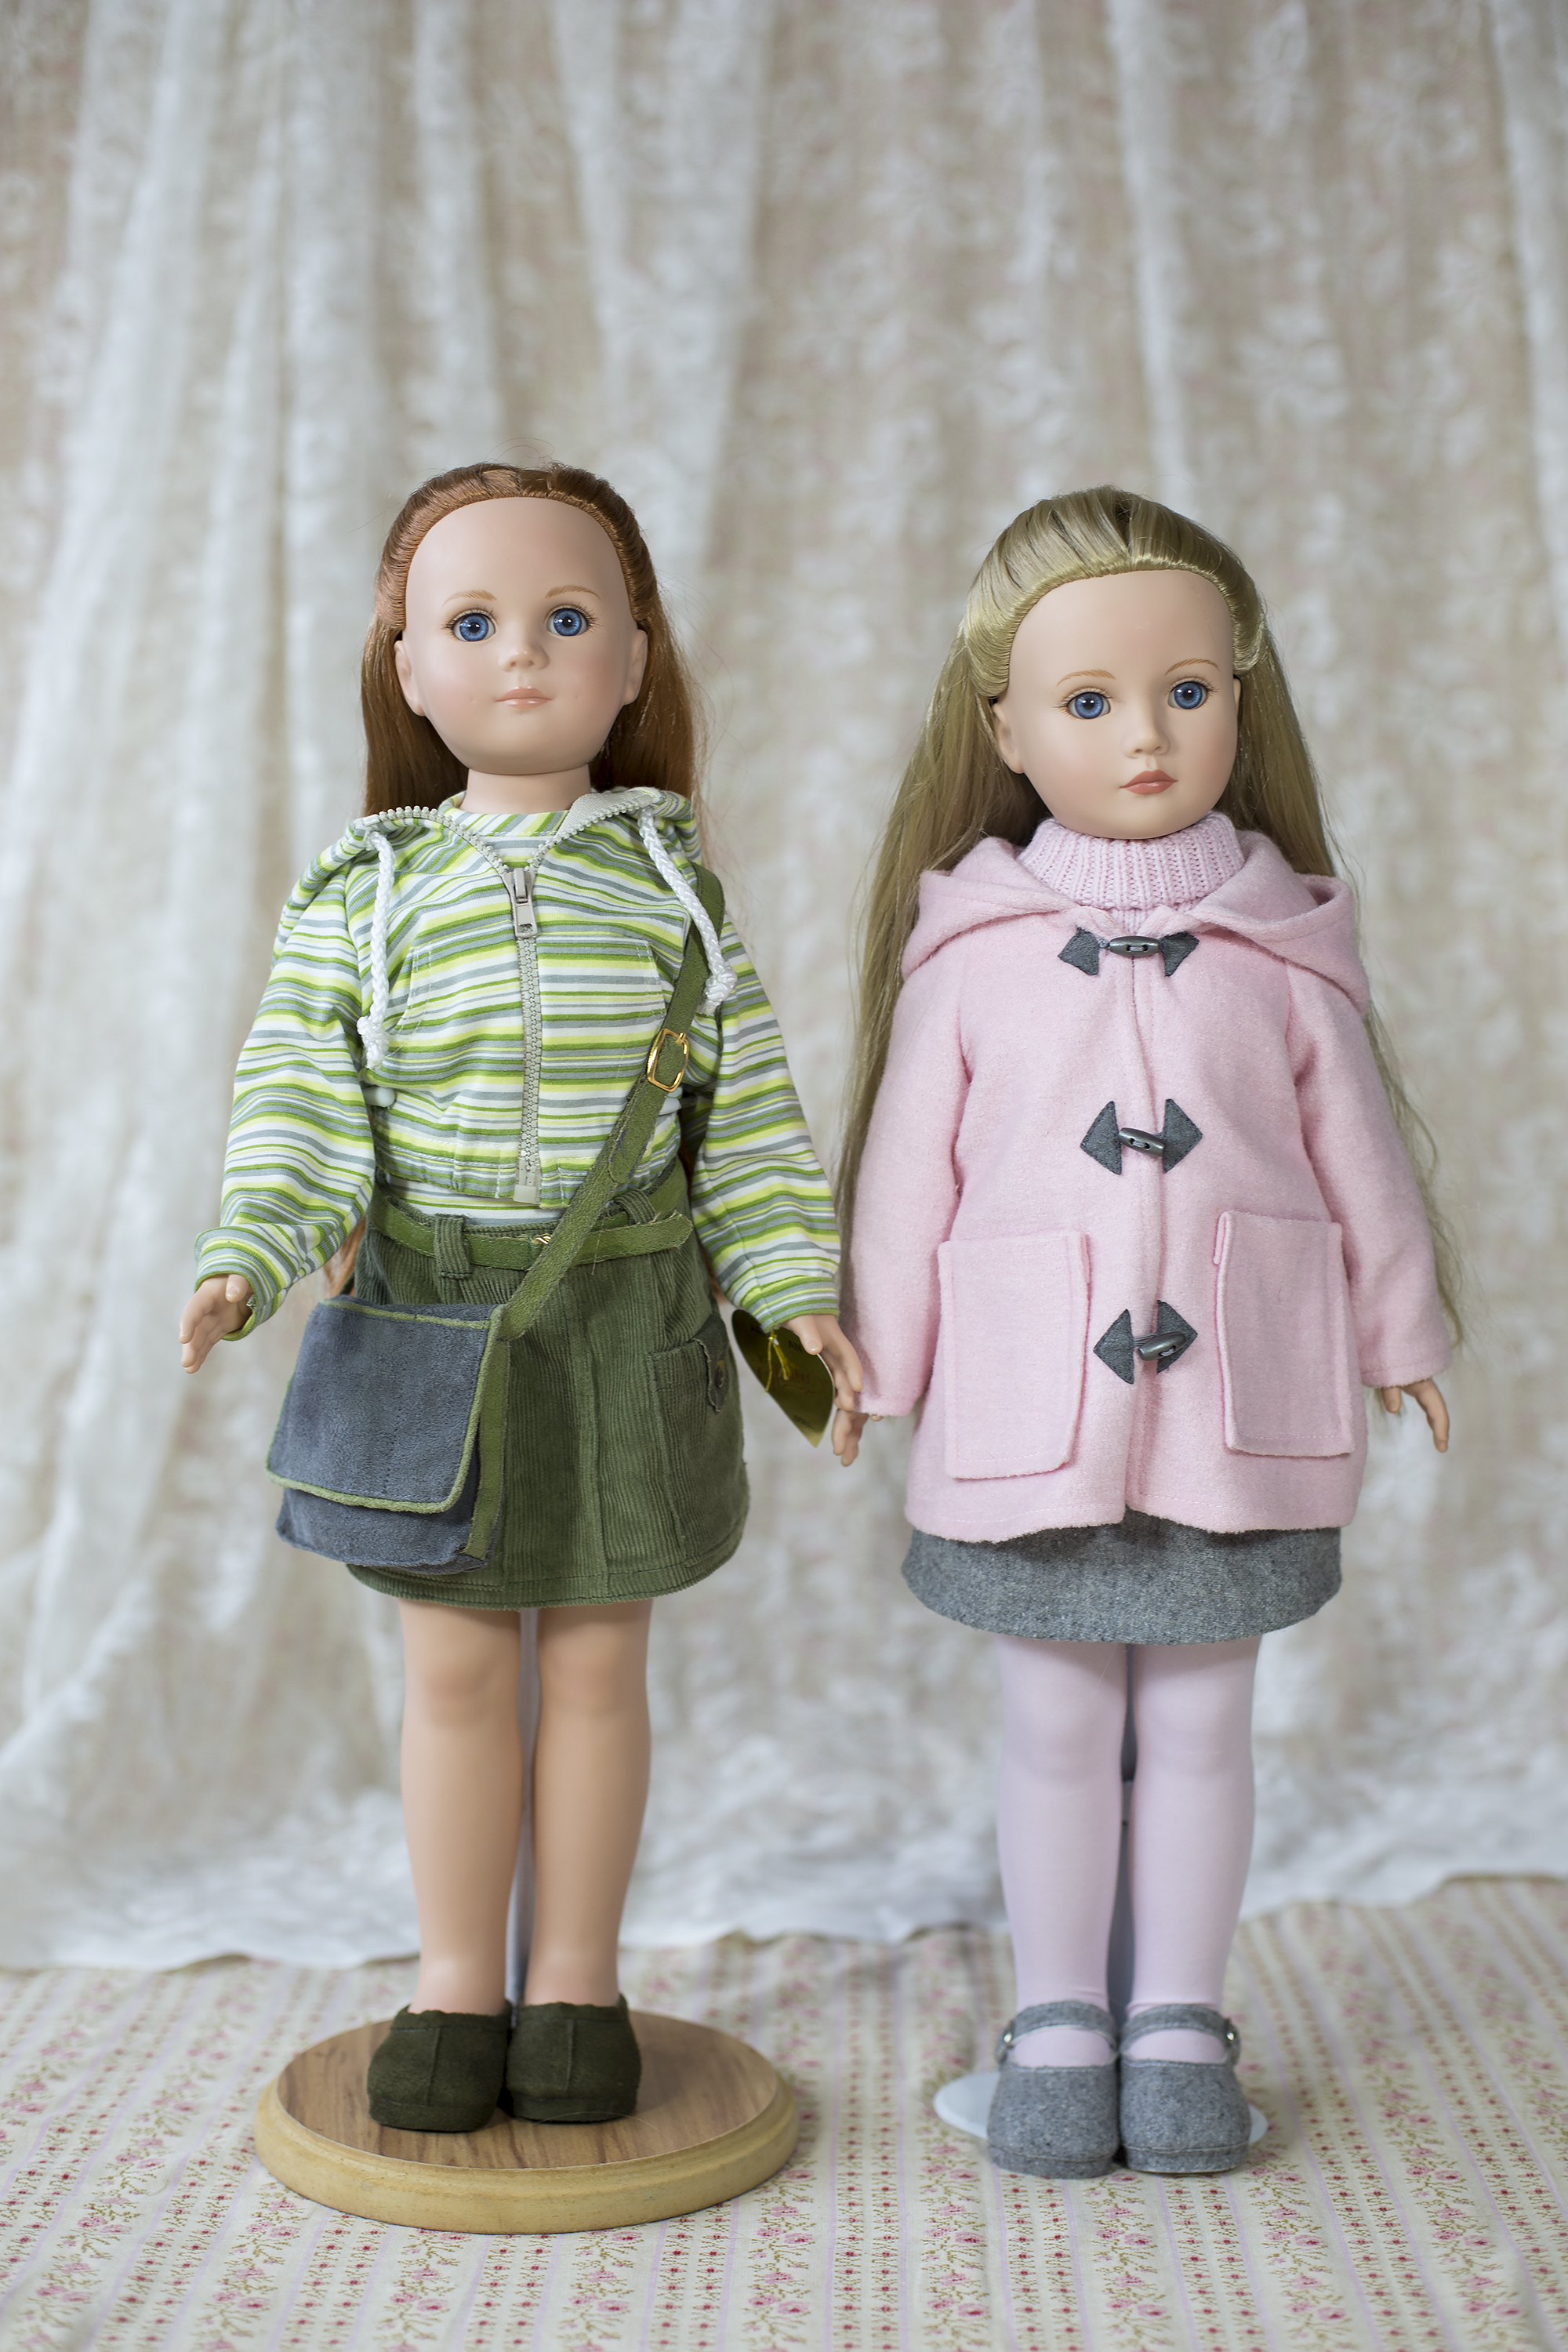 """21""""  Robert Tonner dolls  from America. Madison Ave field trip """"Gloria Ann"""" in pink duffel coat and Central Park stroll in green """"Ruth Anne"""" both 2004."""